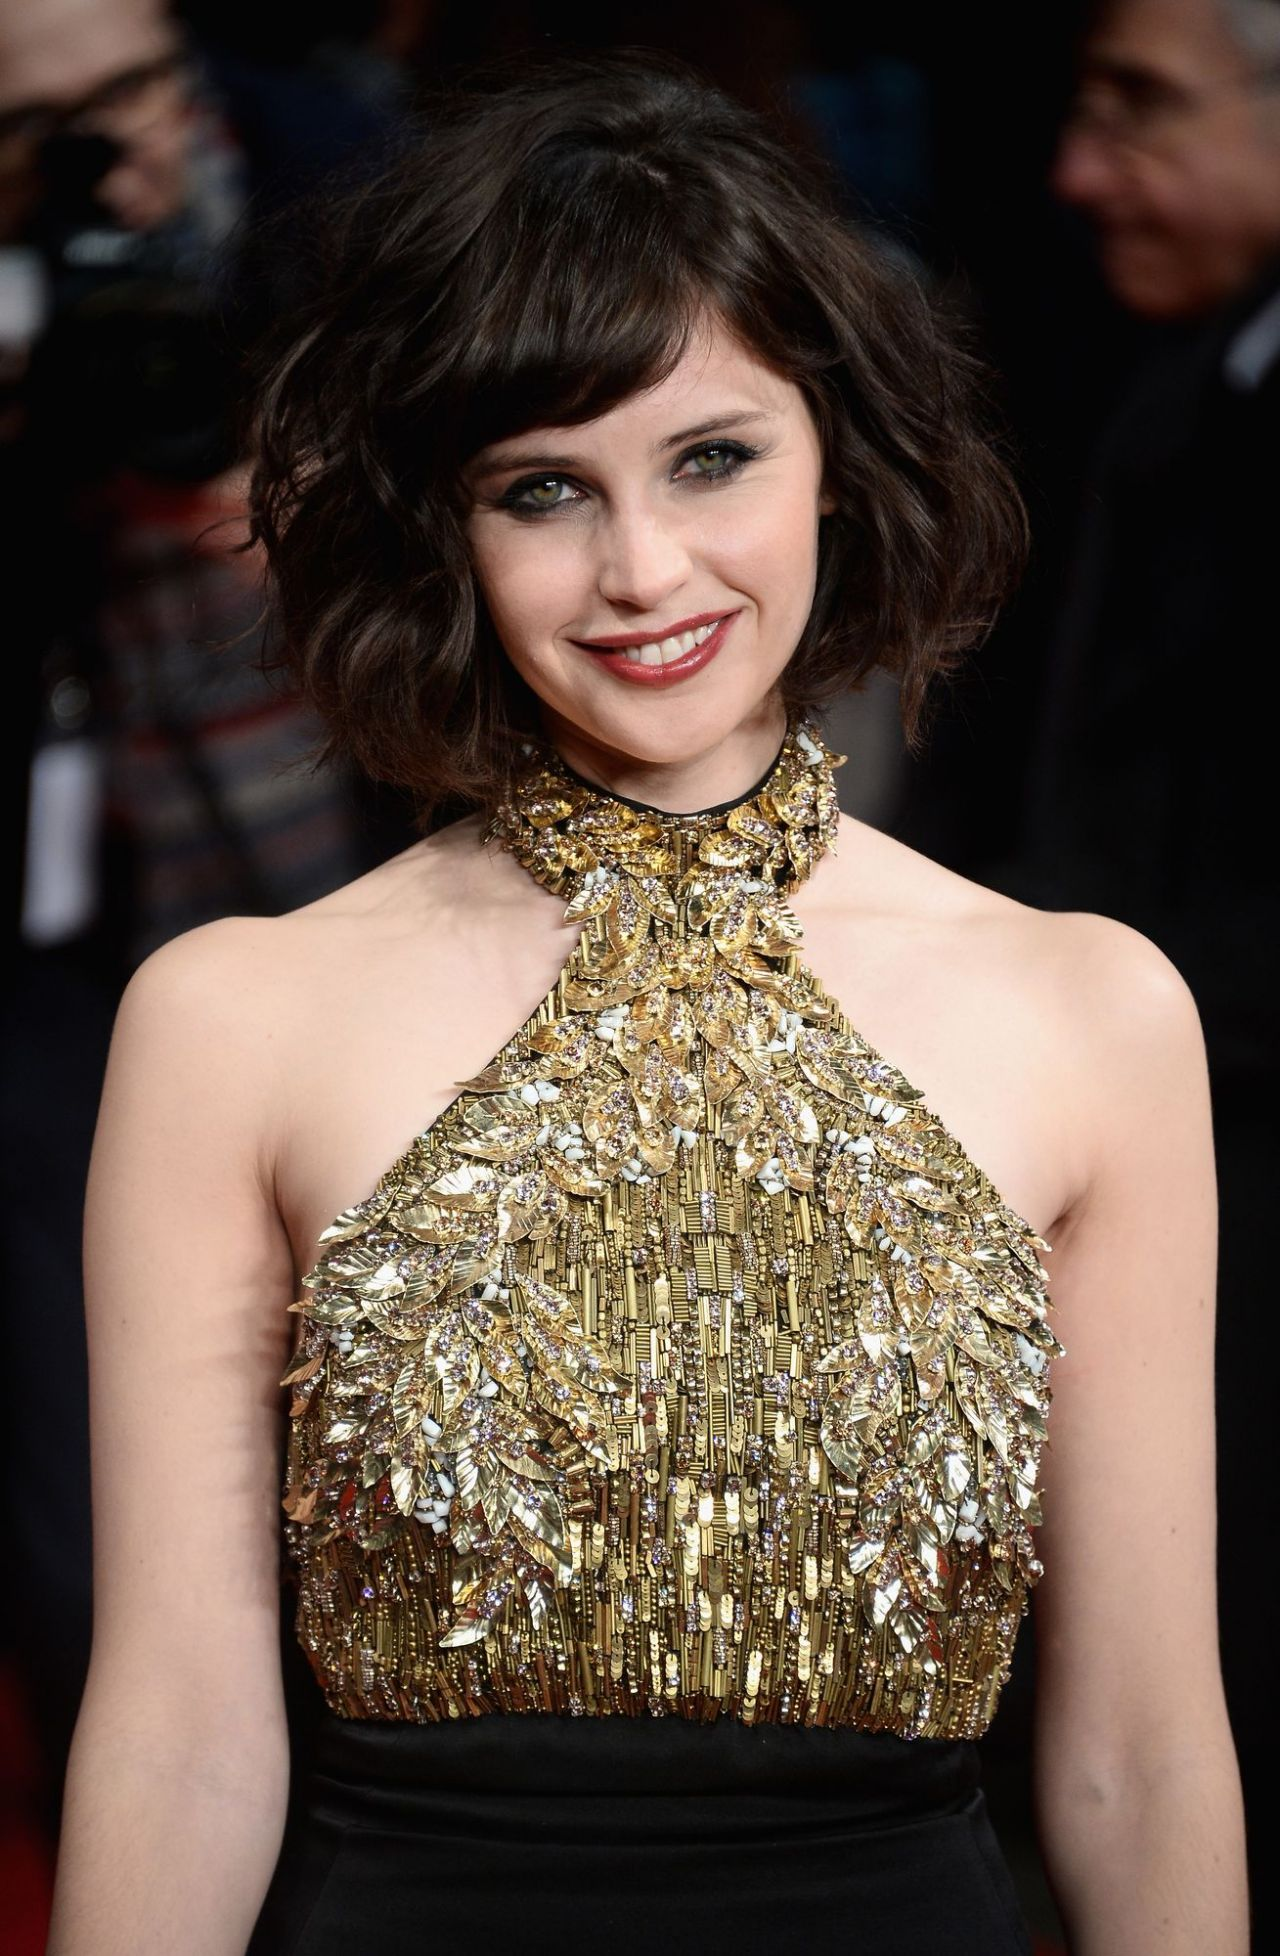 Felicity Jones - THE INVISIBLE WOMAN Premiere in London, January 2014